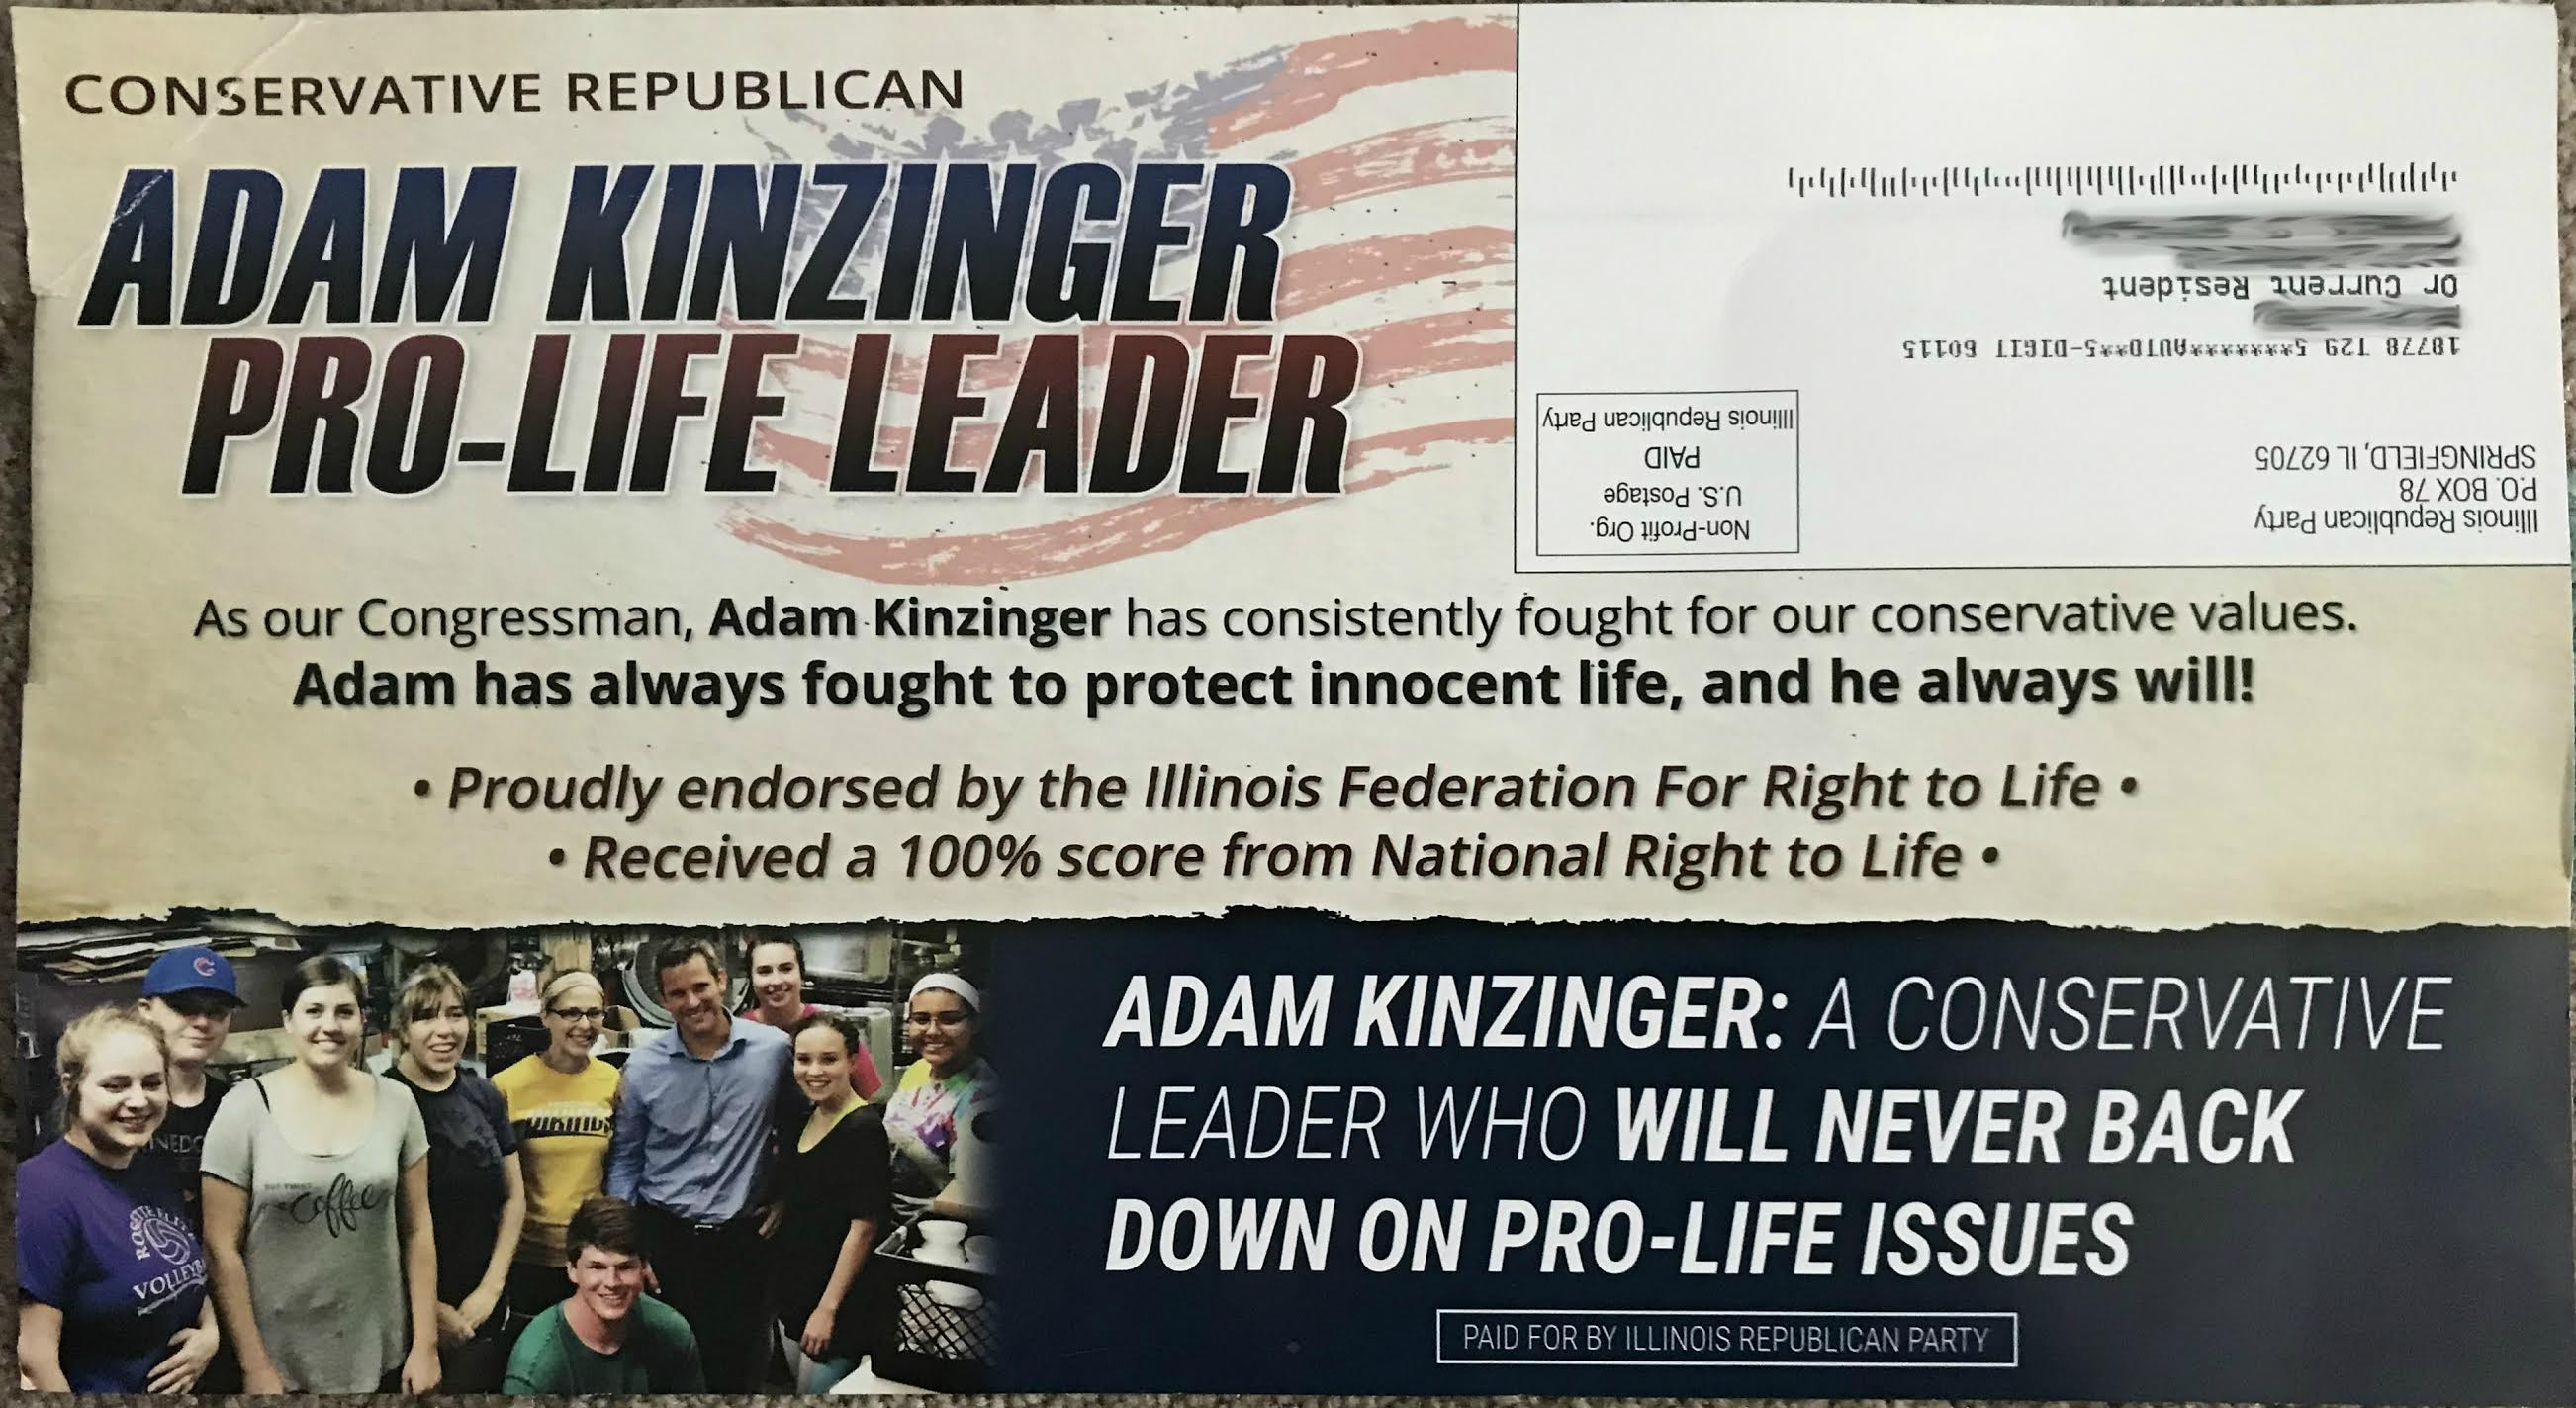 Women outraged after appearing in pro life ad for Republican